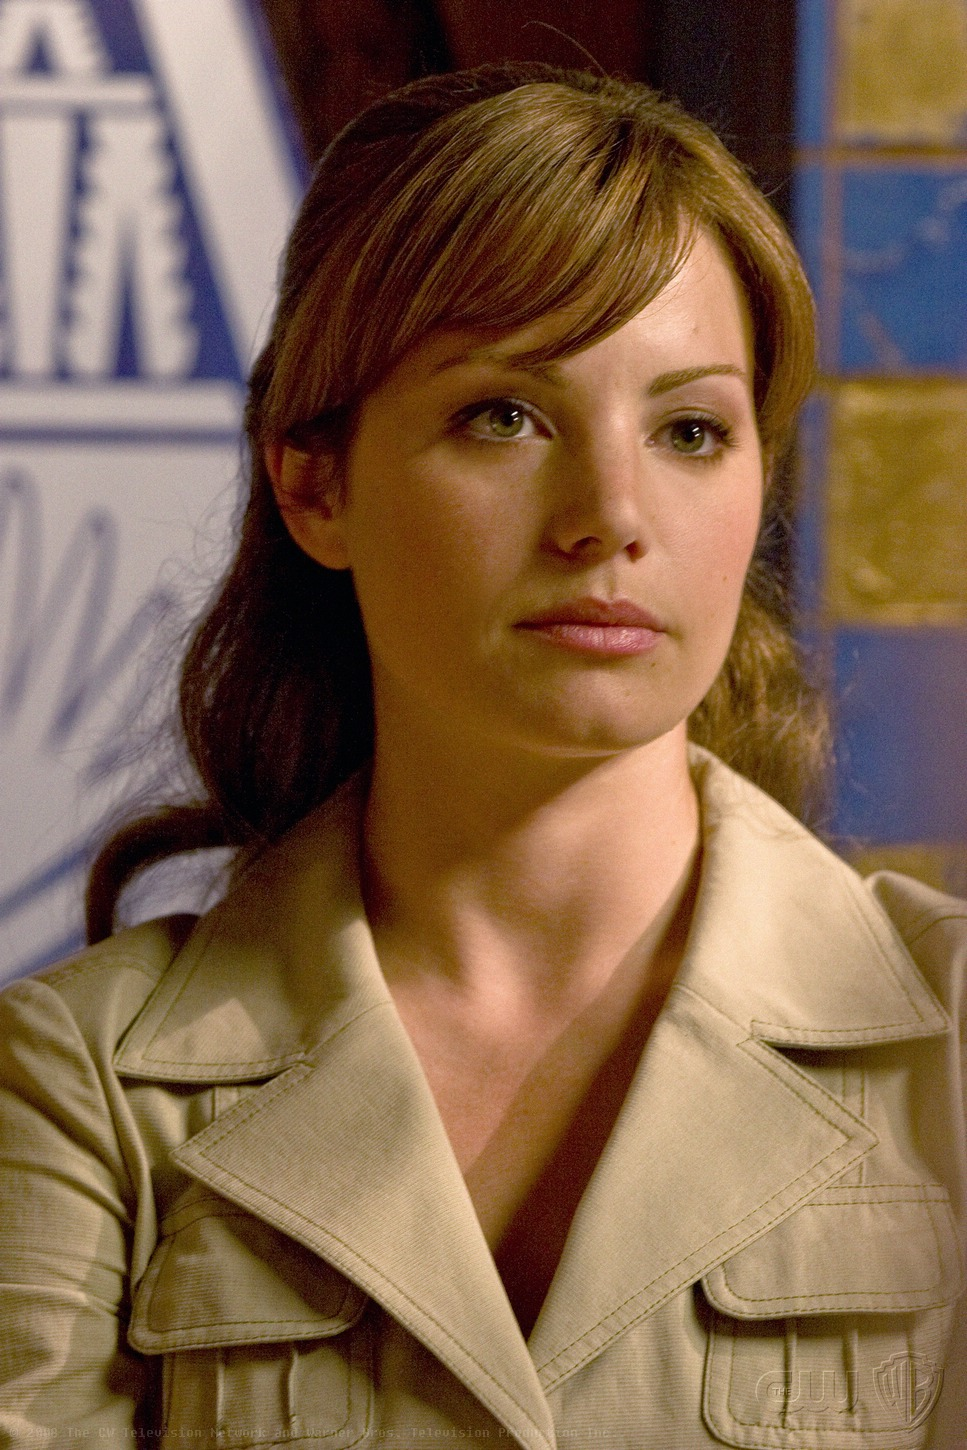 Think, that erica durance lois lane absolutely agree